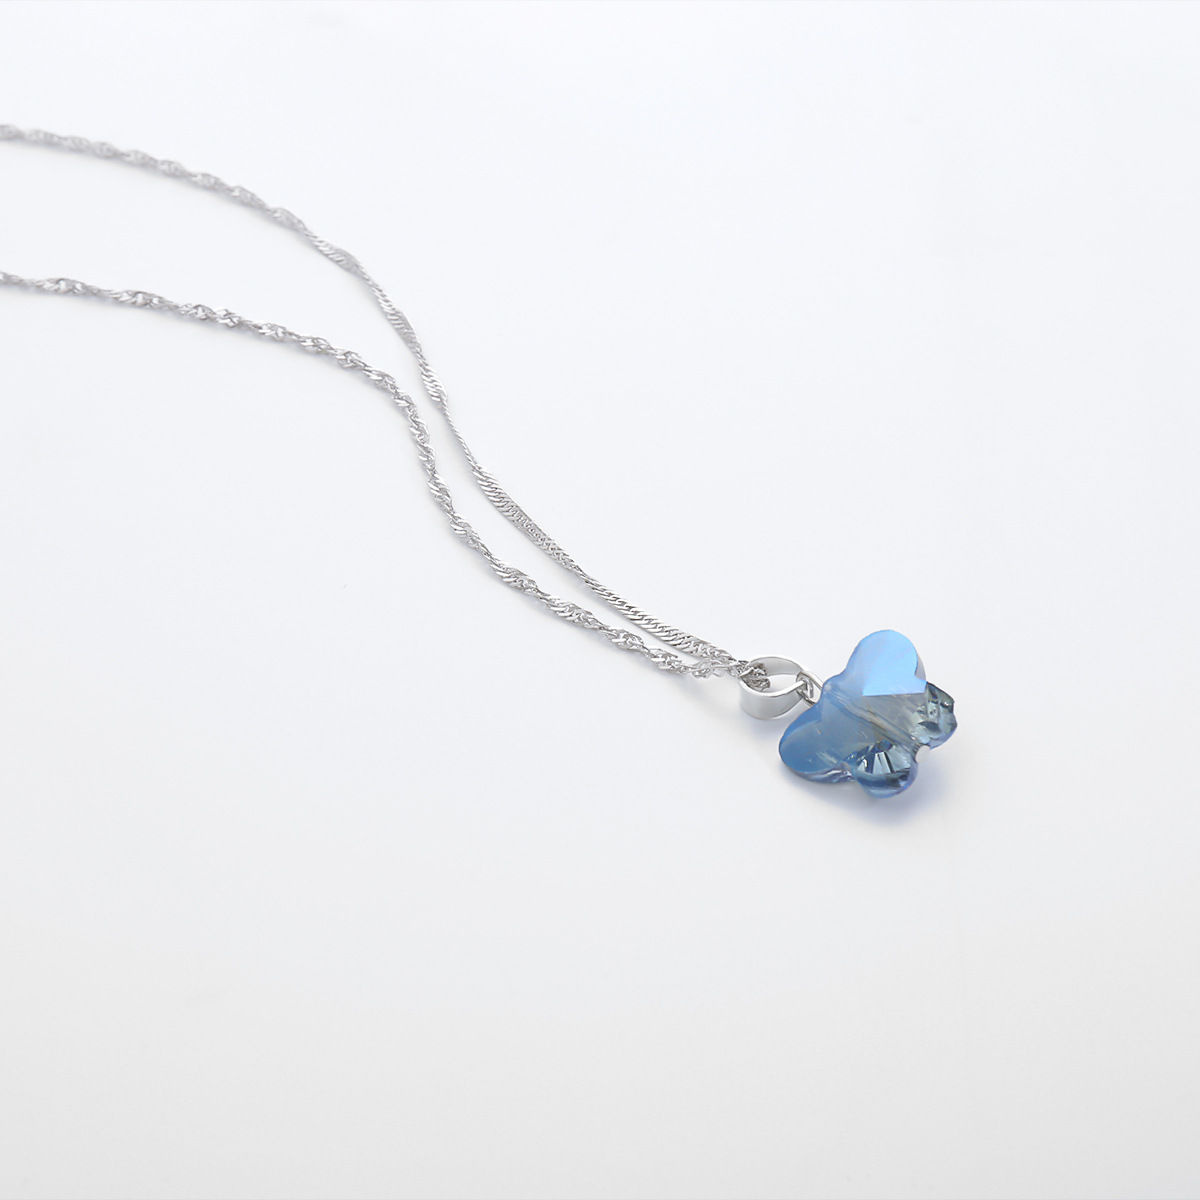 fashion jewelry simple streamer wild pendant necklace temperament geometric stained glass small butterfly necklace wholesale nihaojewelry NHXR225457